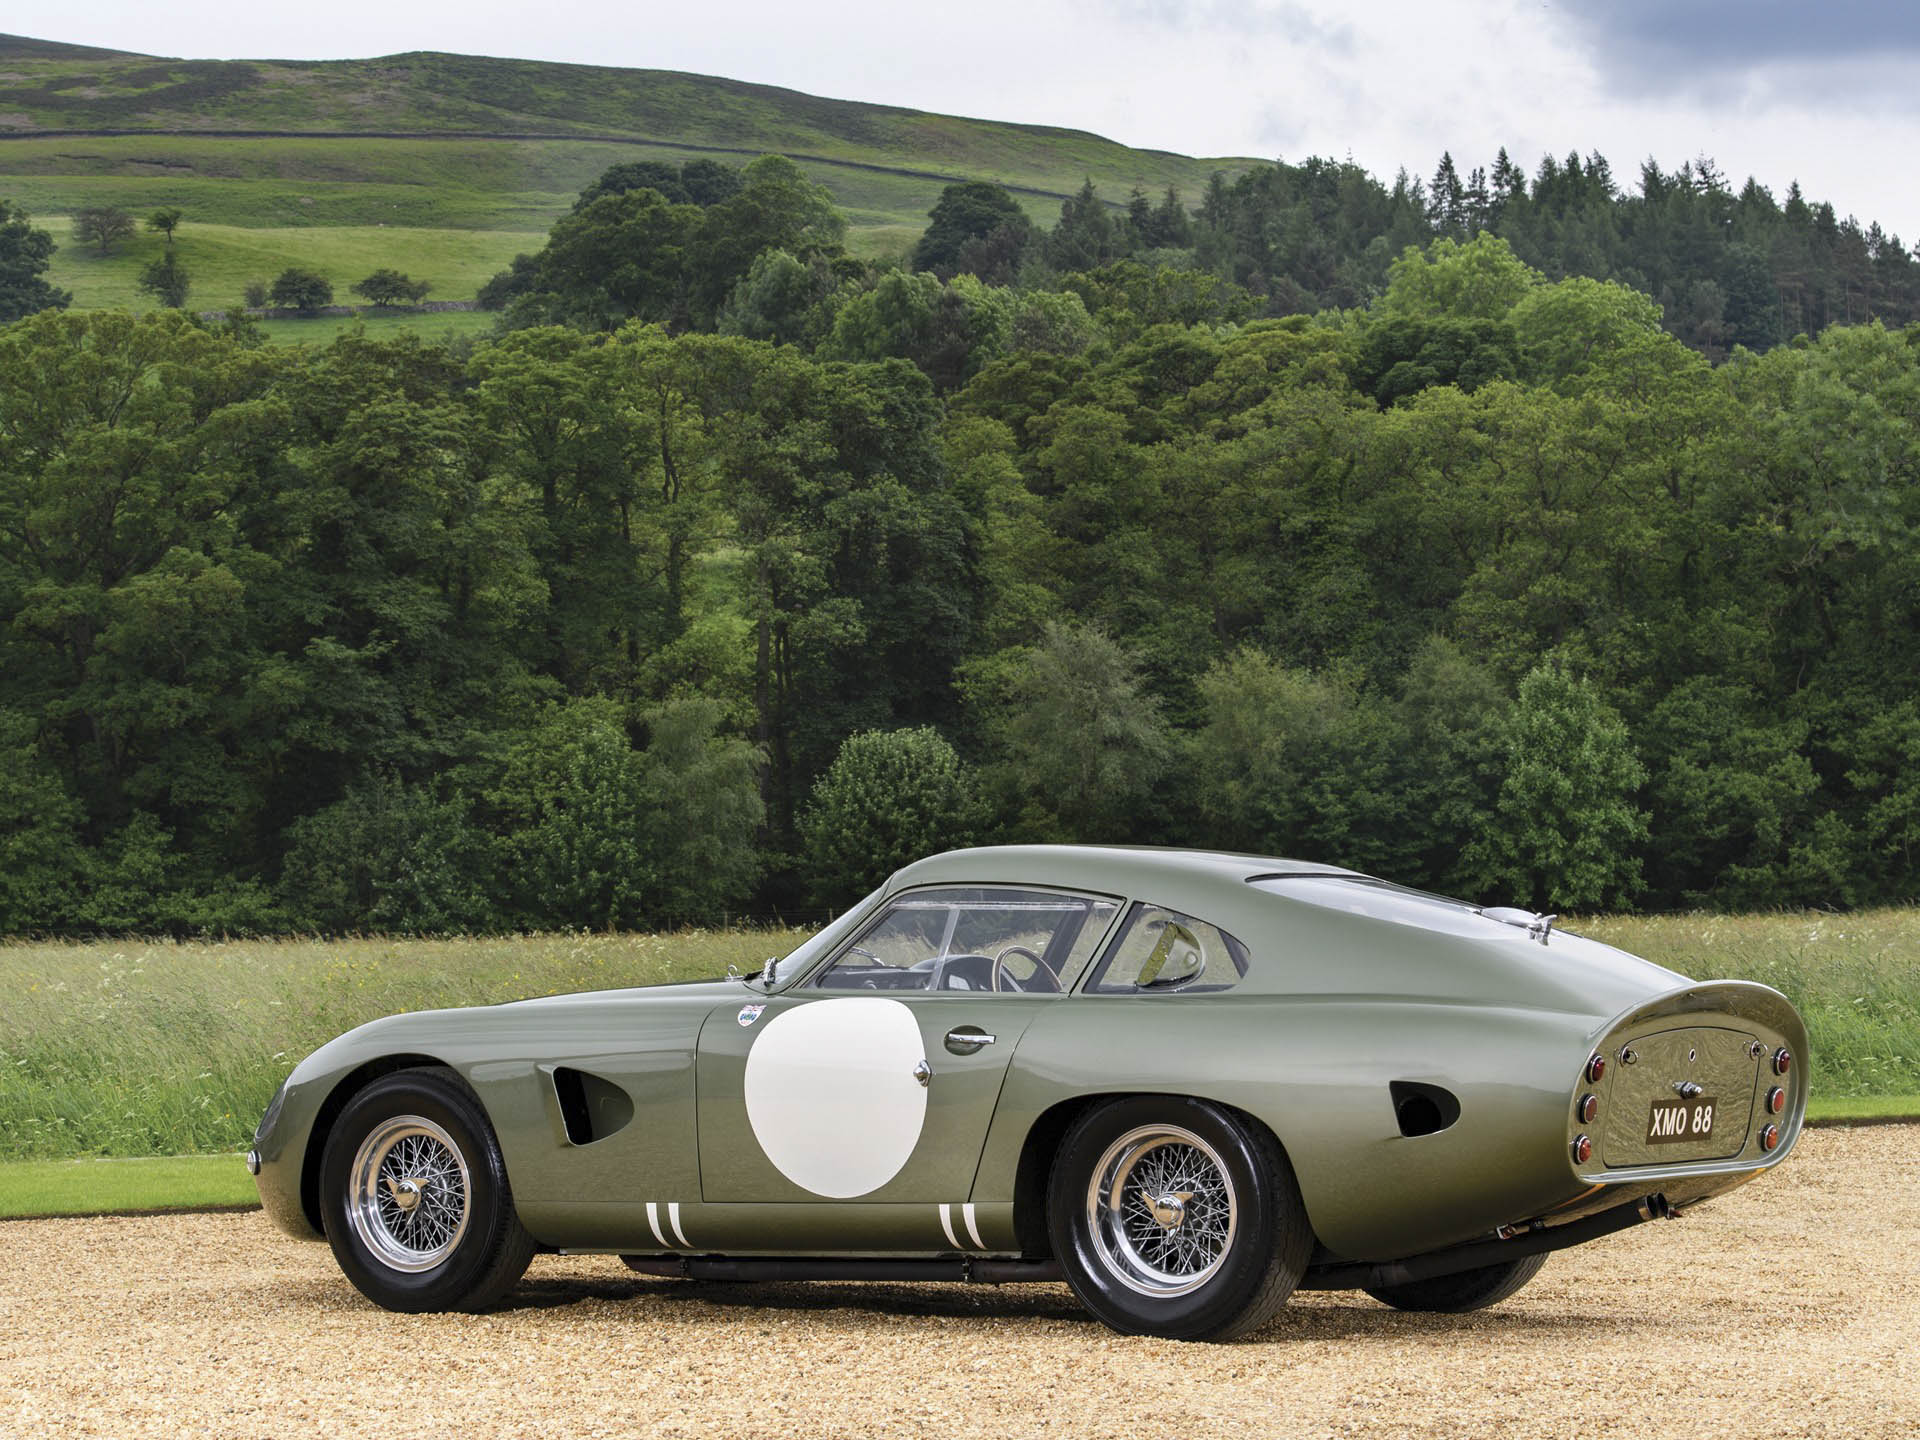 1963 Aston Martin DP215 Grand Touring Competition Prototype rear 3/4